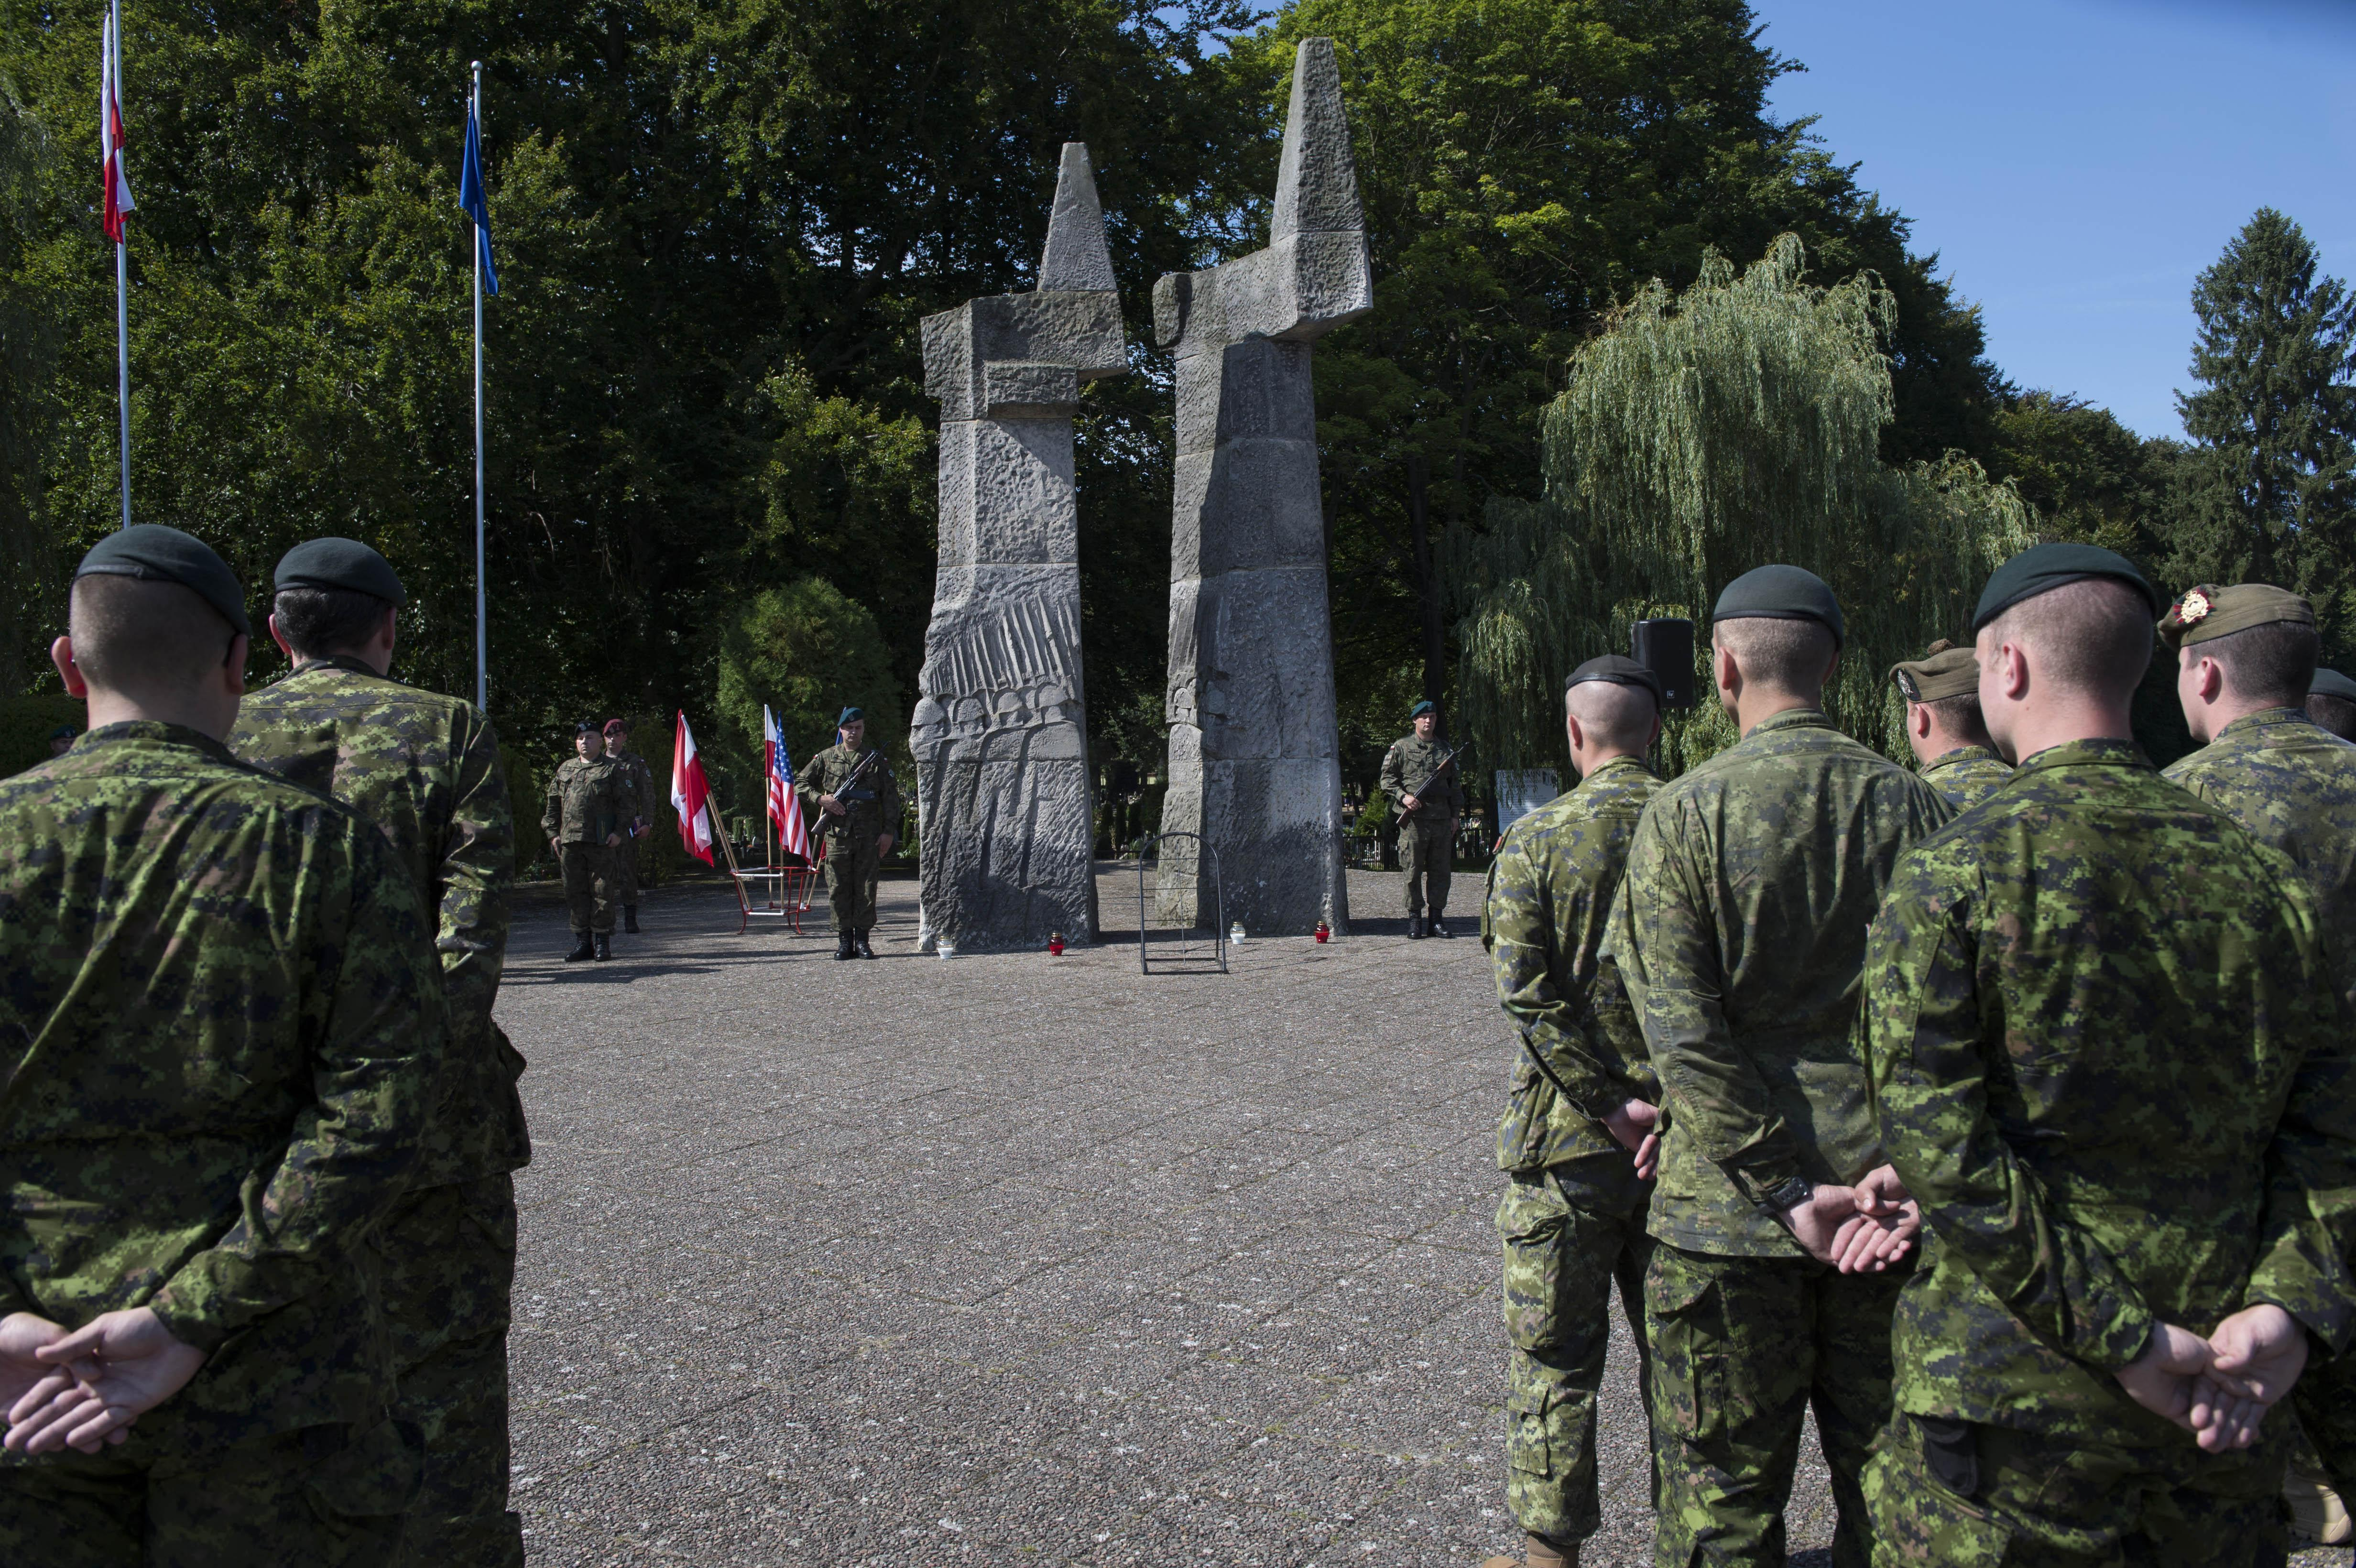 Soldiers face a monument.